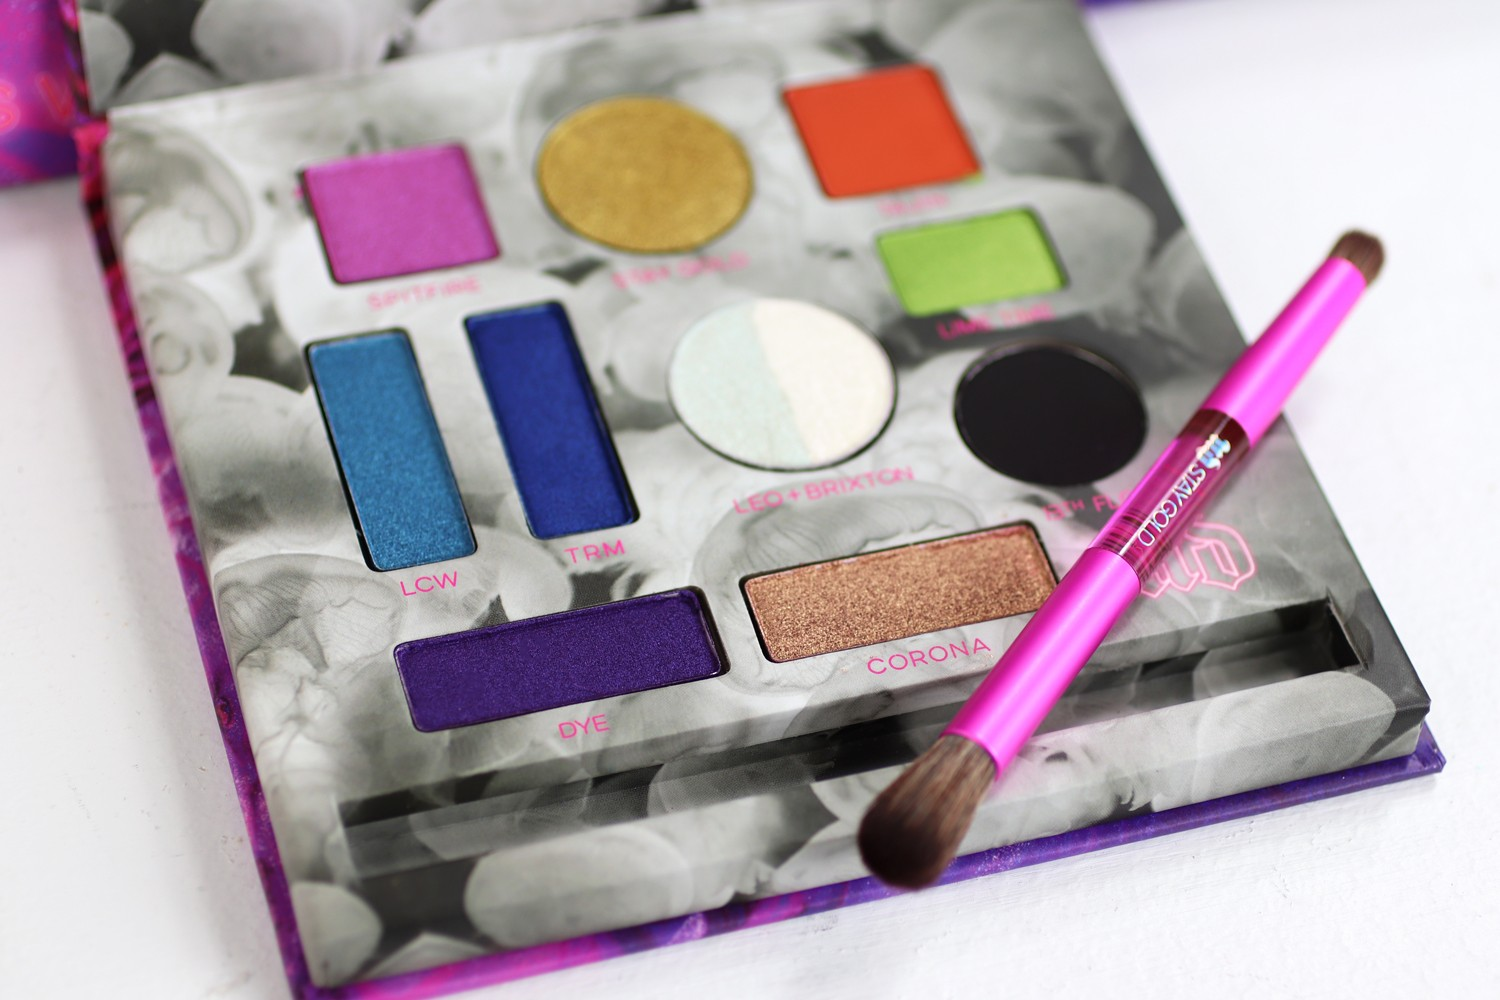 Urban Decay x Kristen Leanne Kaleidoscope Dream Palette Review and Swatches